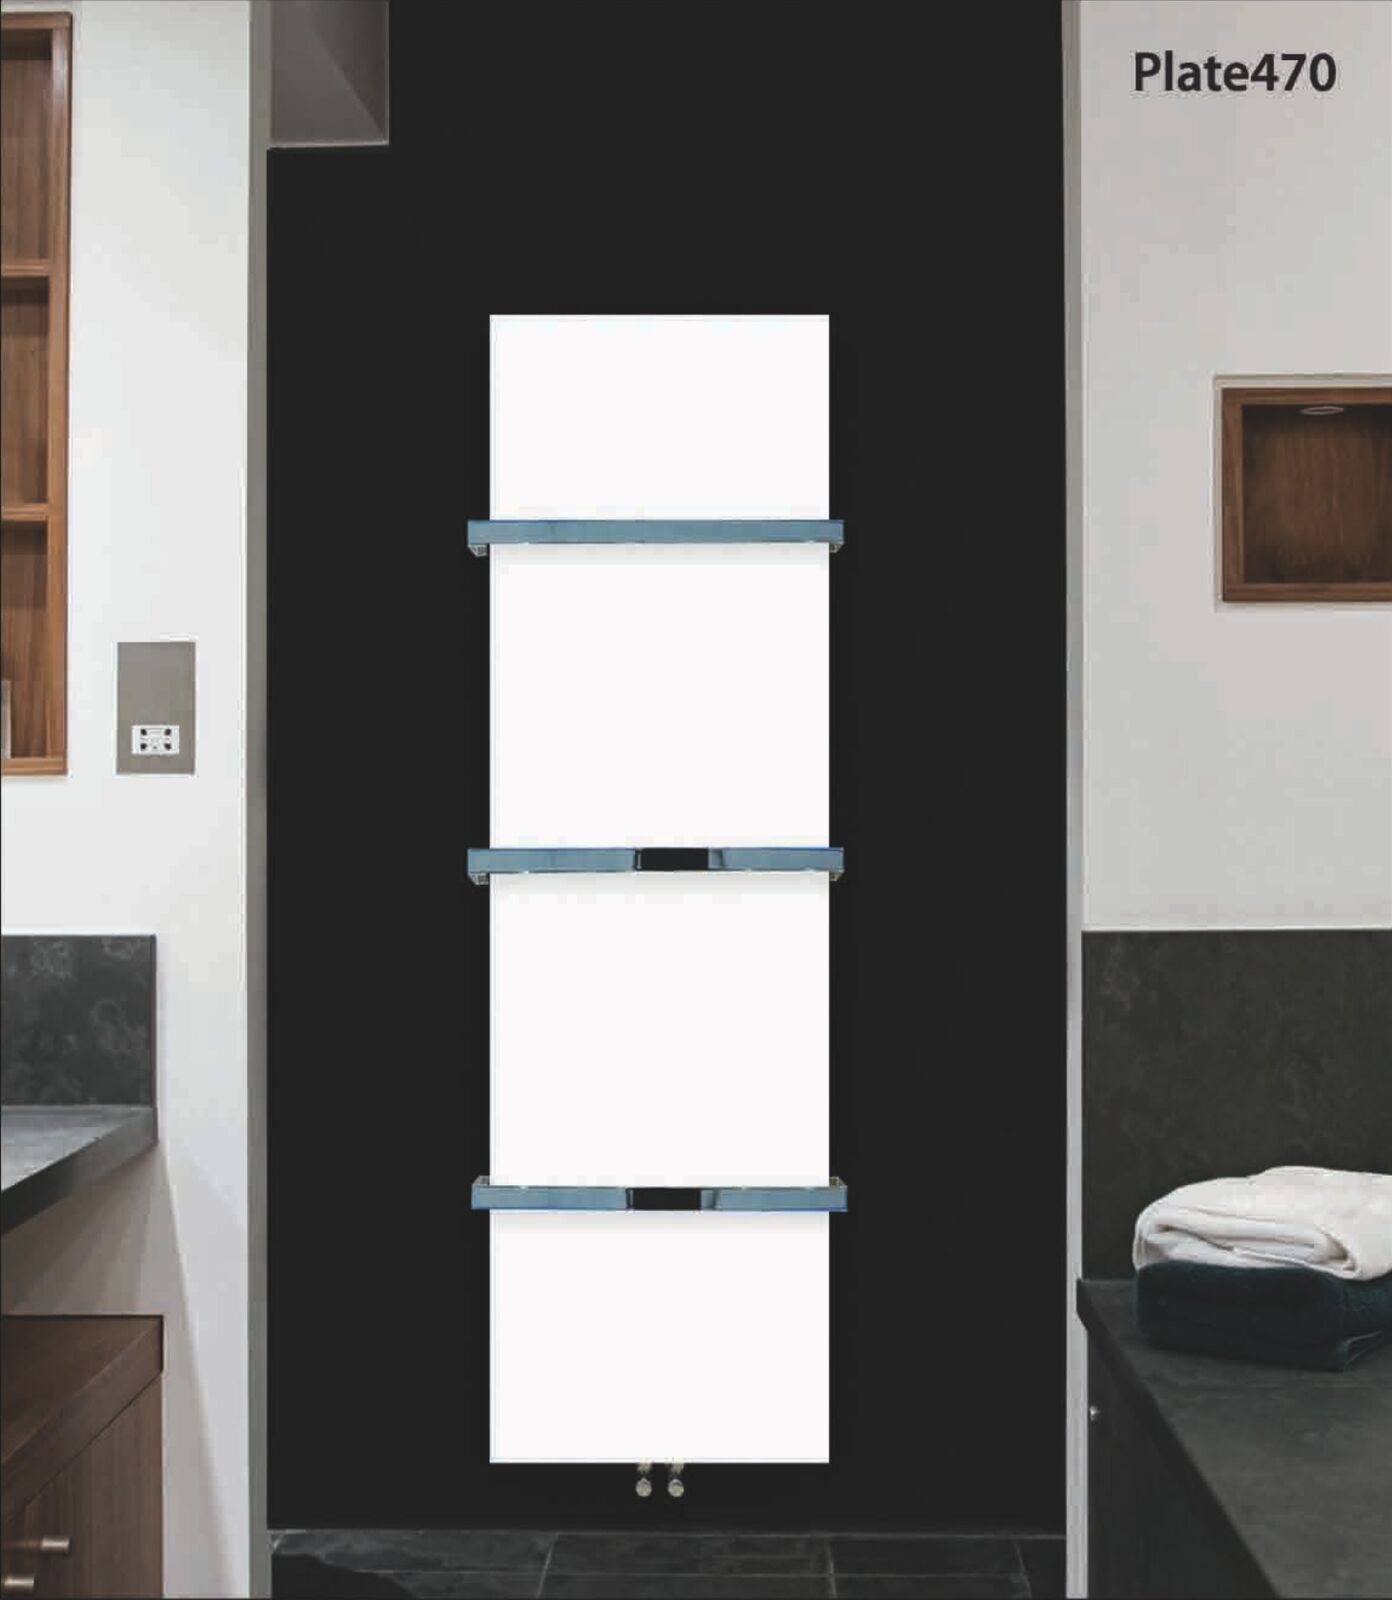 designer heated towel rail radiator bathroom warmer modern luxury elegant rad - Designer Heated Towel Rails For Bathrooms